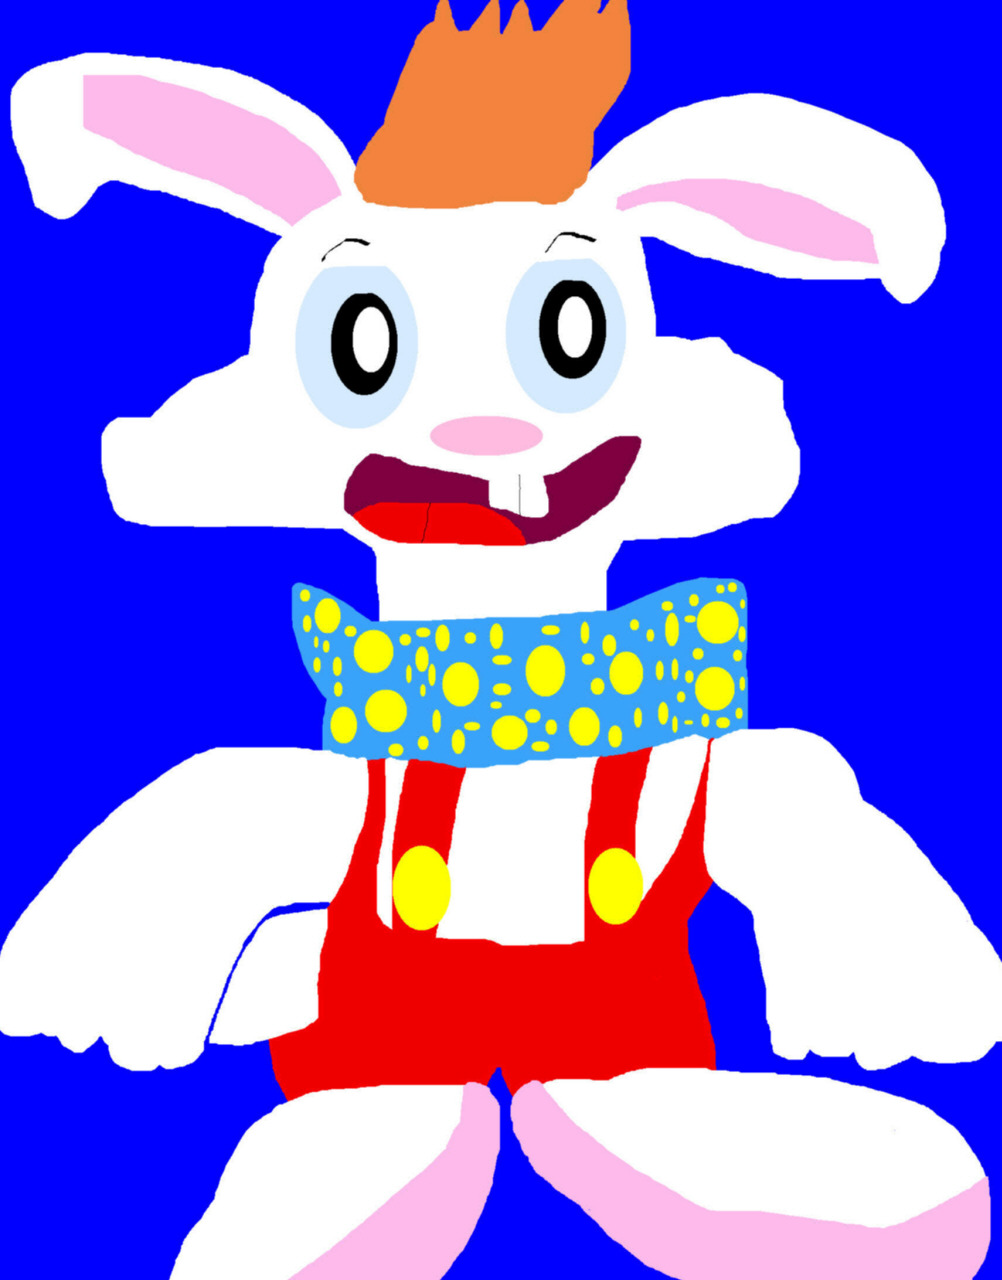 Random Chubby Chibi Roger Rabbit MS Paint by Falconlobo